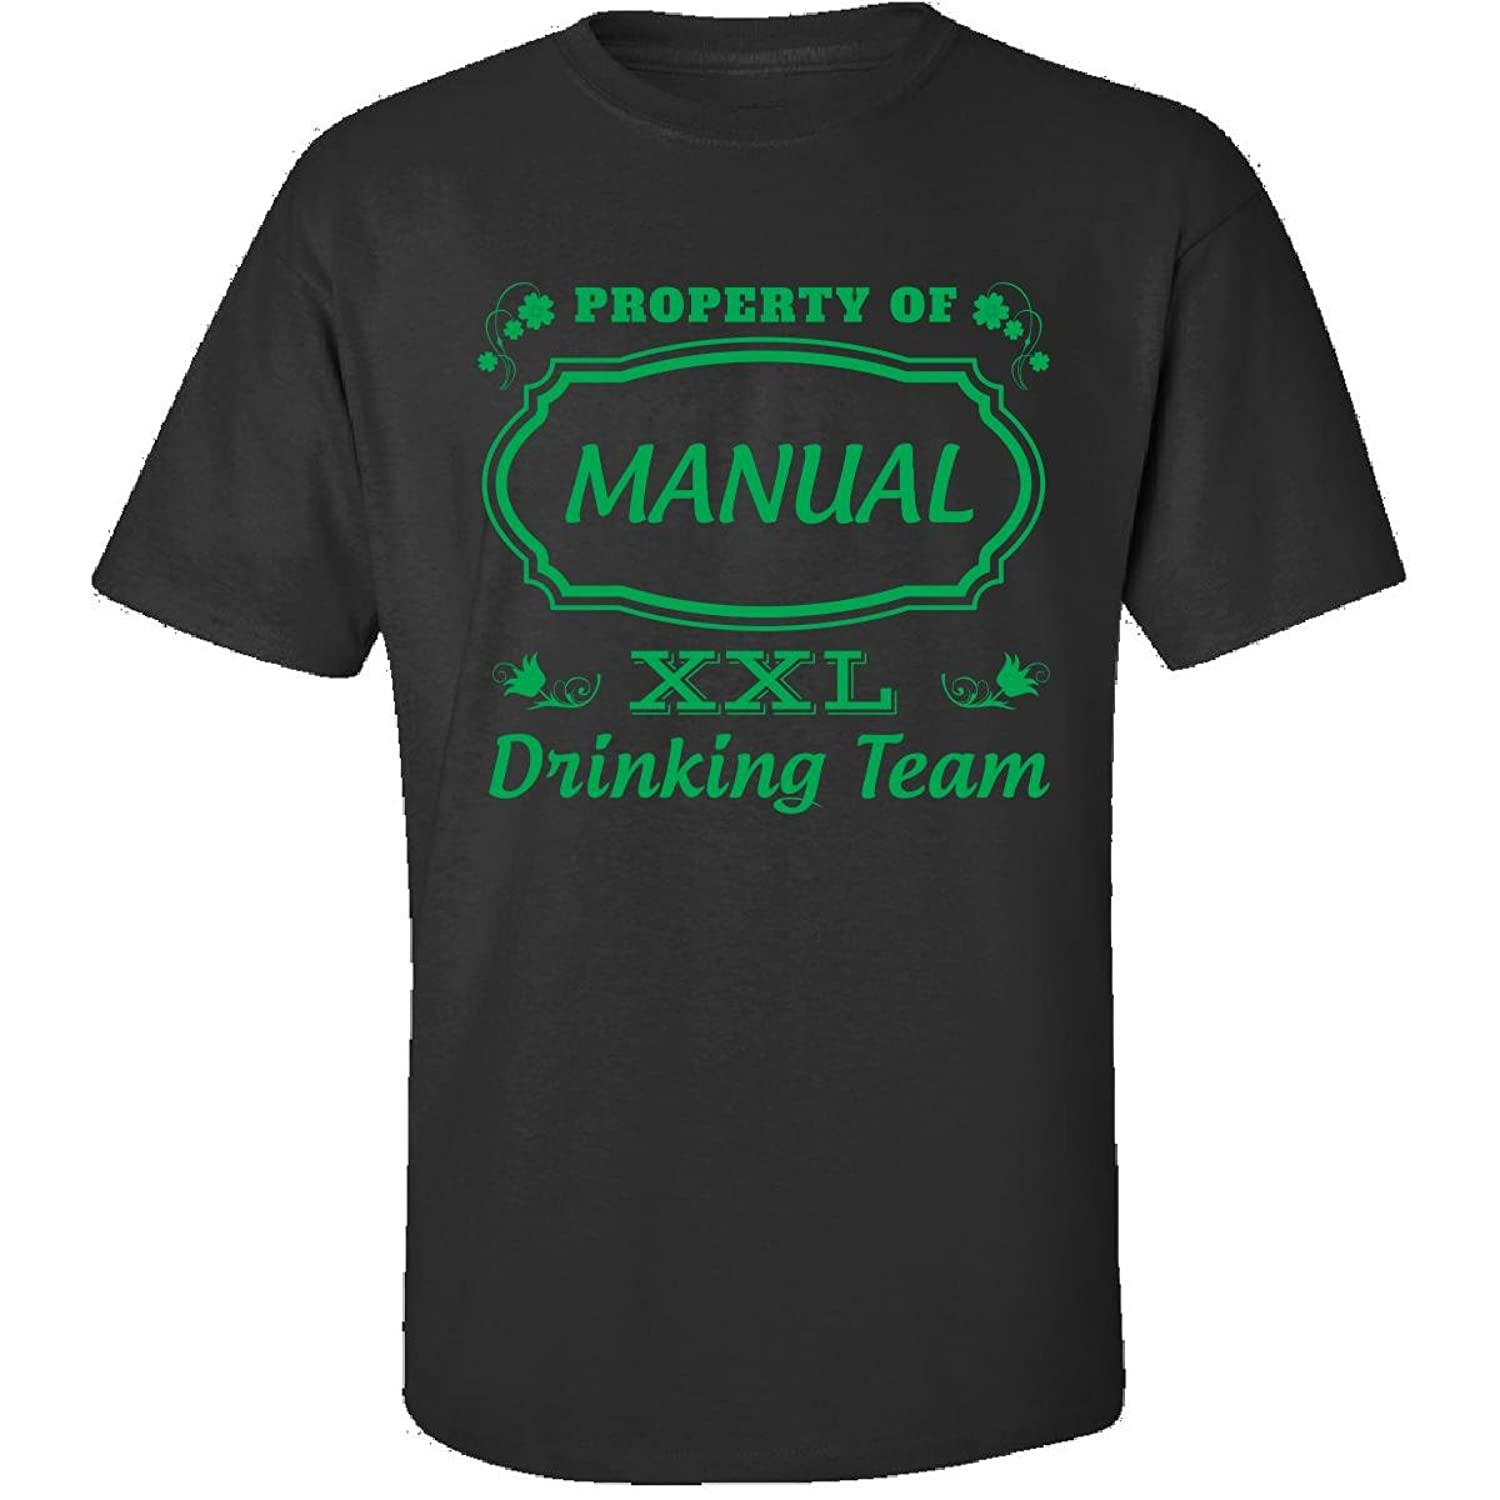 Property Of Manual St Patrick Day Beer Drinking Team - Adult Shirt